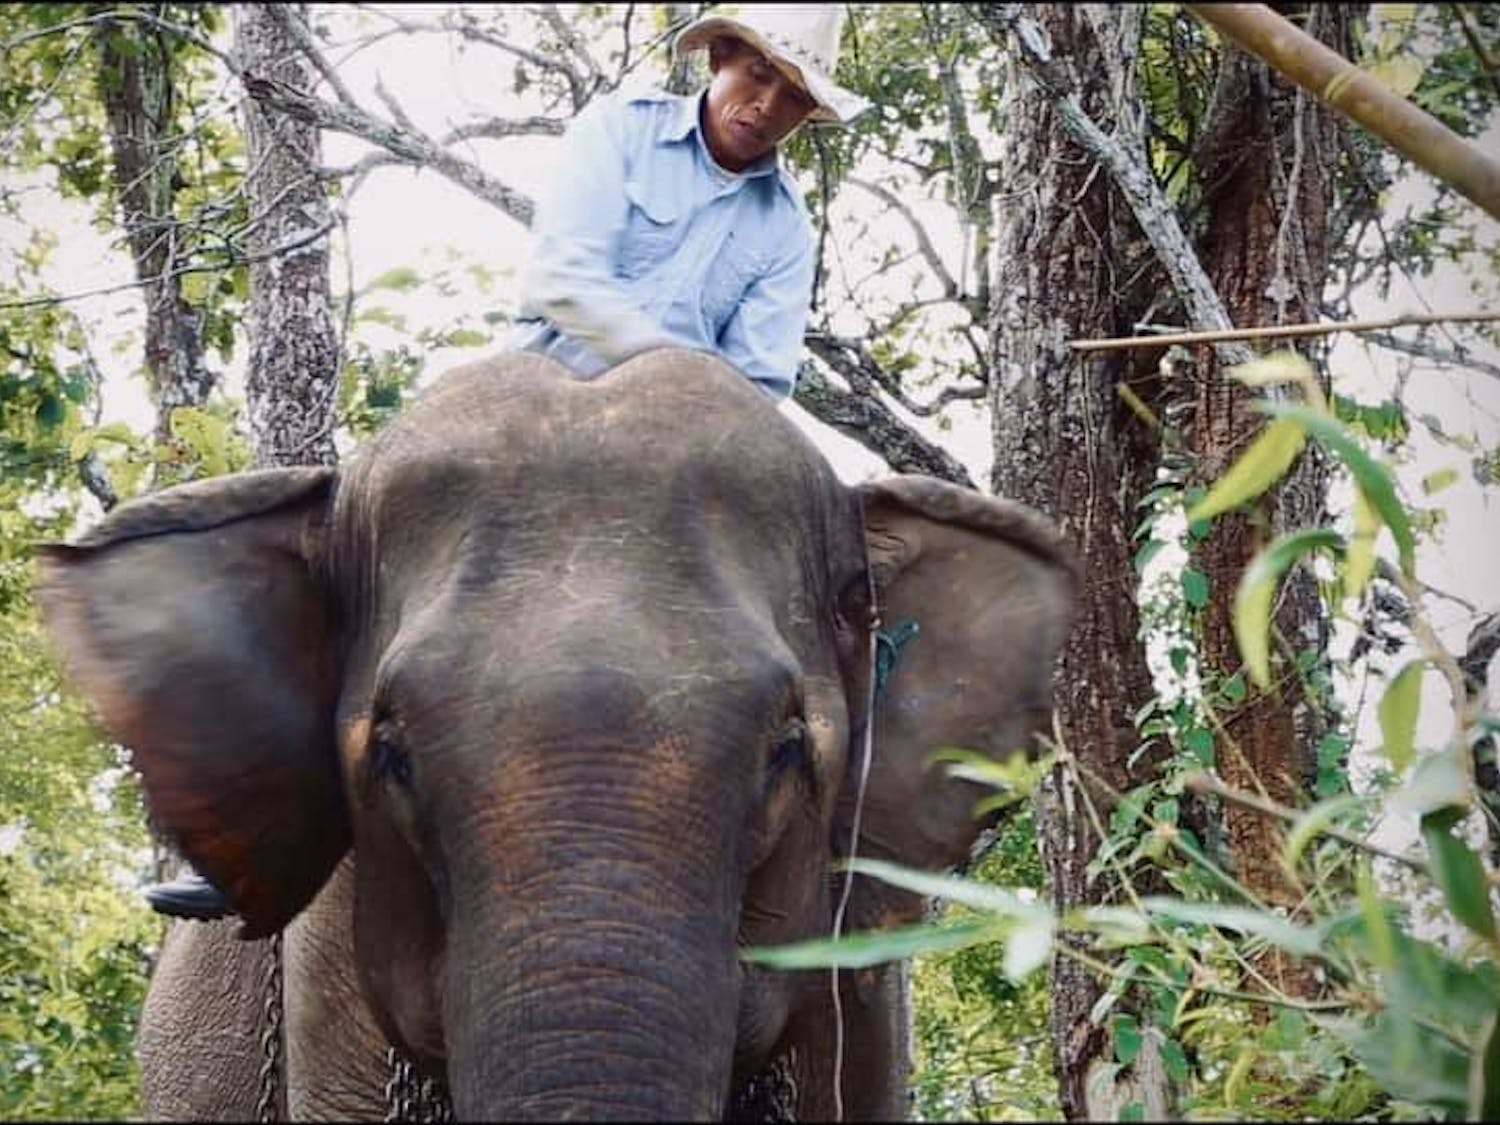 """Mr. Tong and his elephant, Mae Dok, are the stars of """"Elephant Keeper,"""" one of the films being shown at Cinema Verde 2021."""